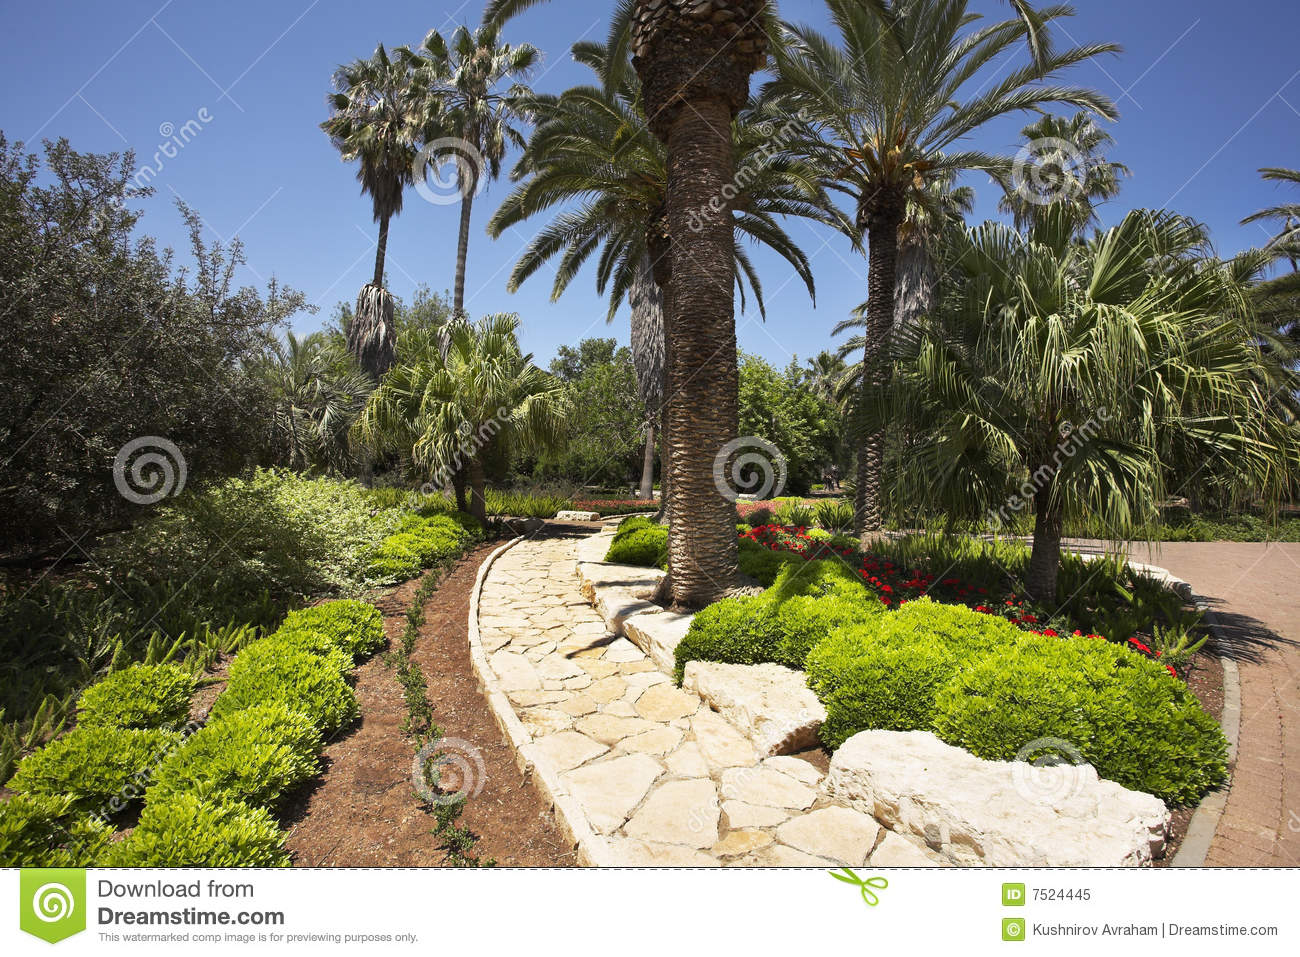 Tree Flower Bed : Tree Flower Bed : Flower Beds with Palm Trees